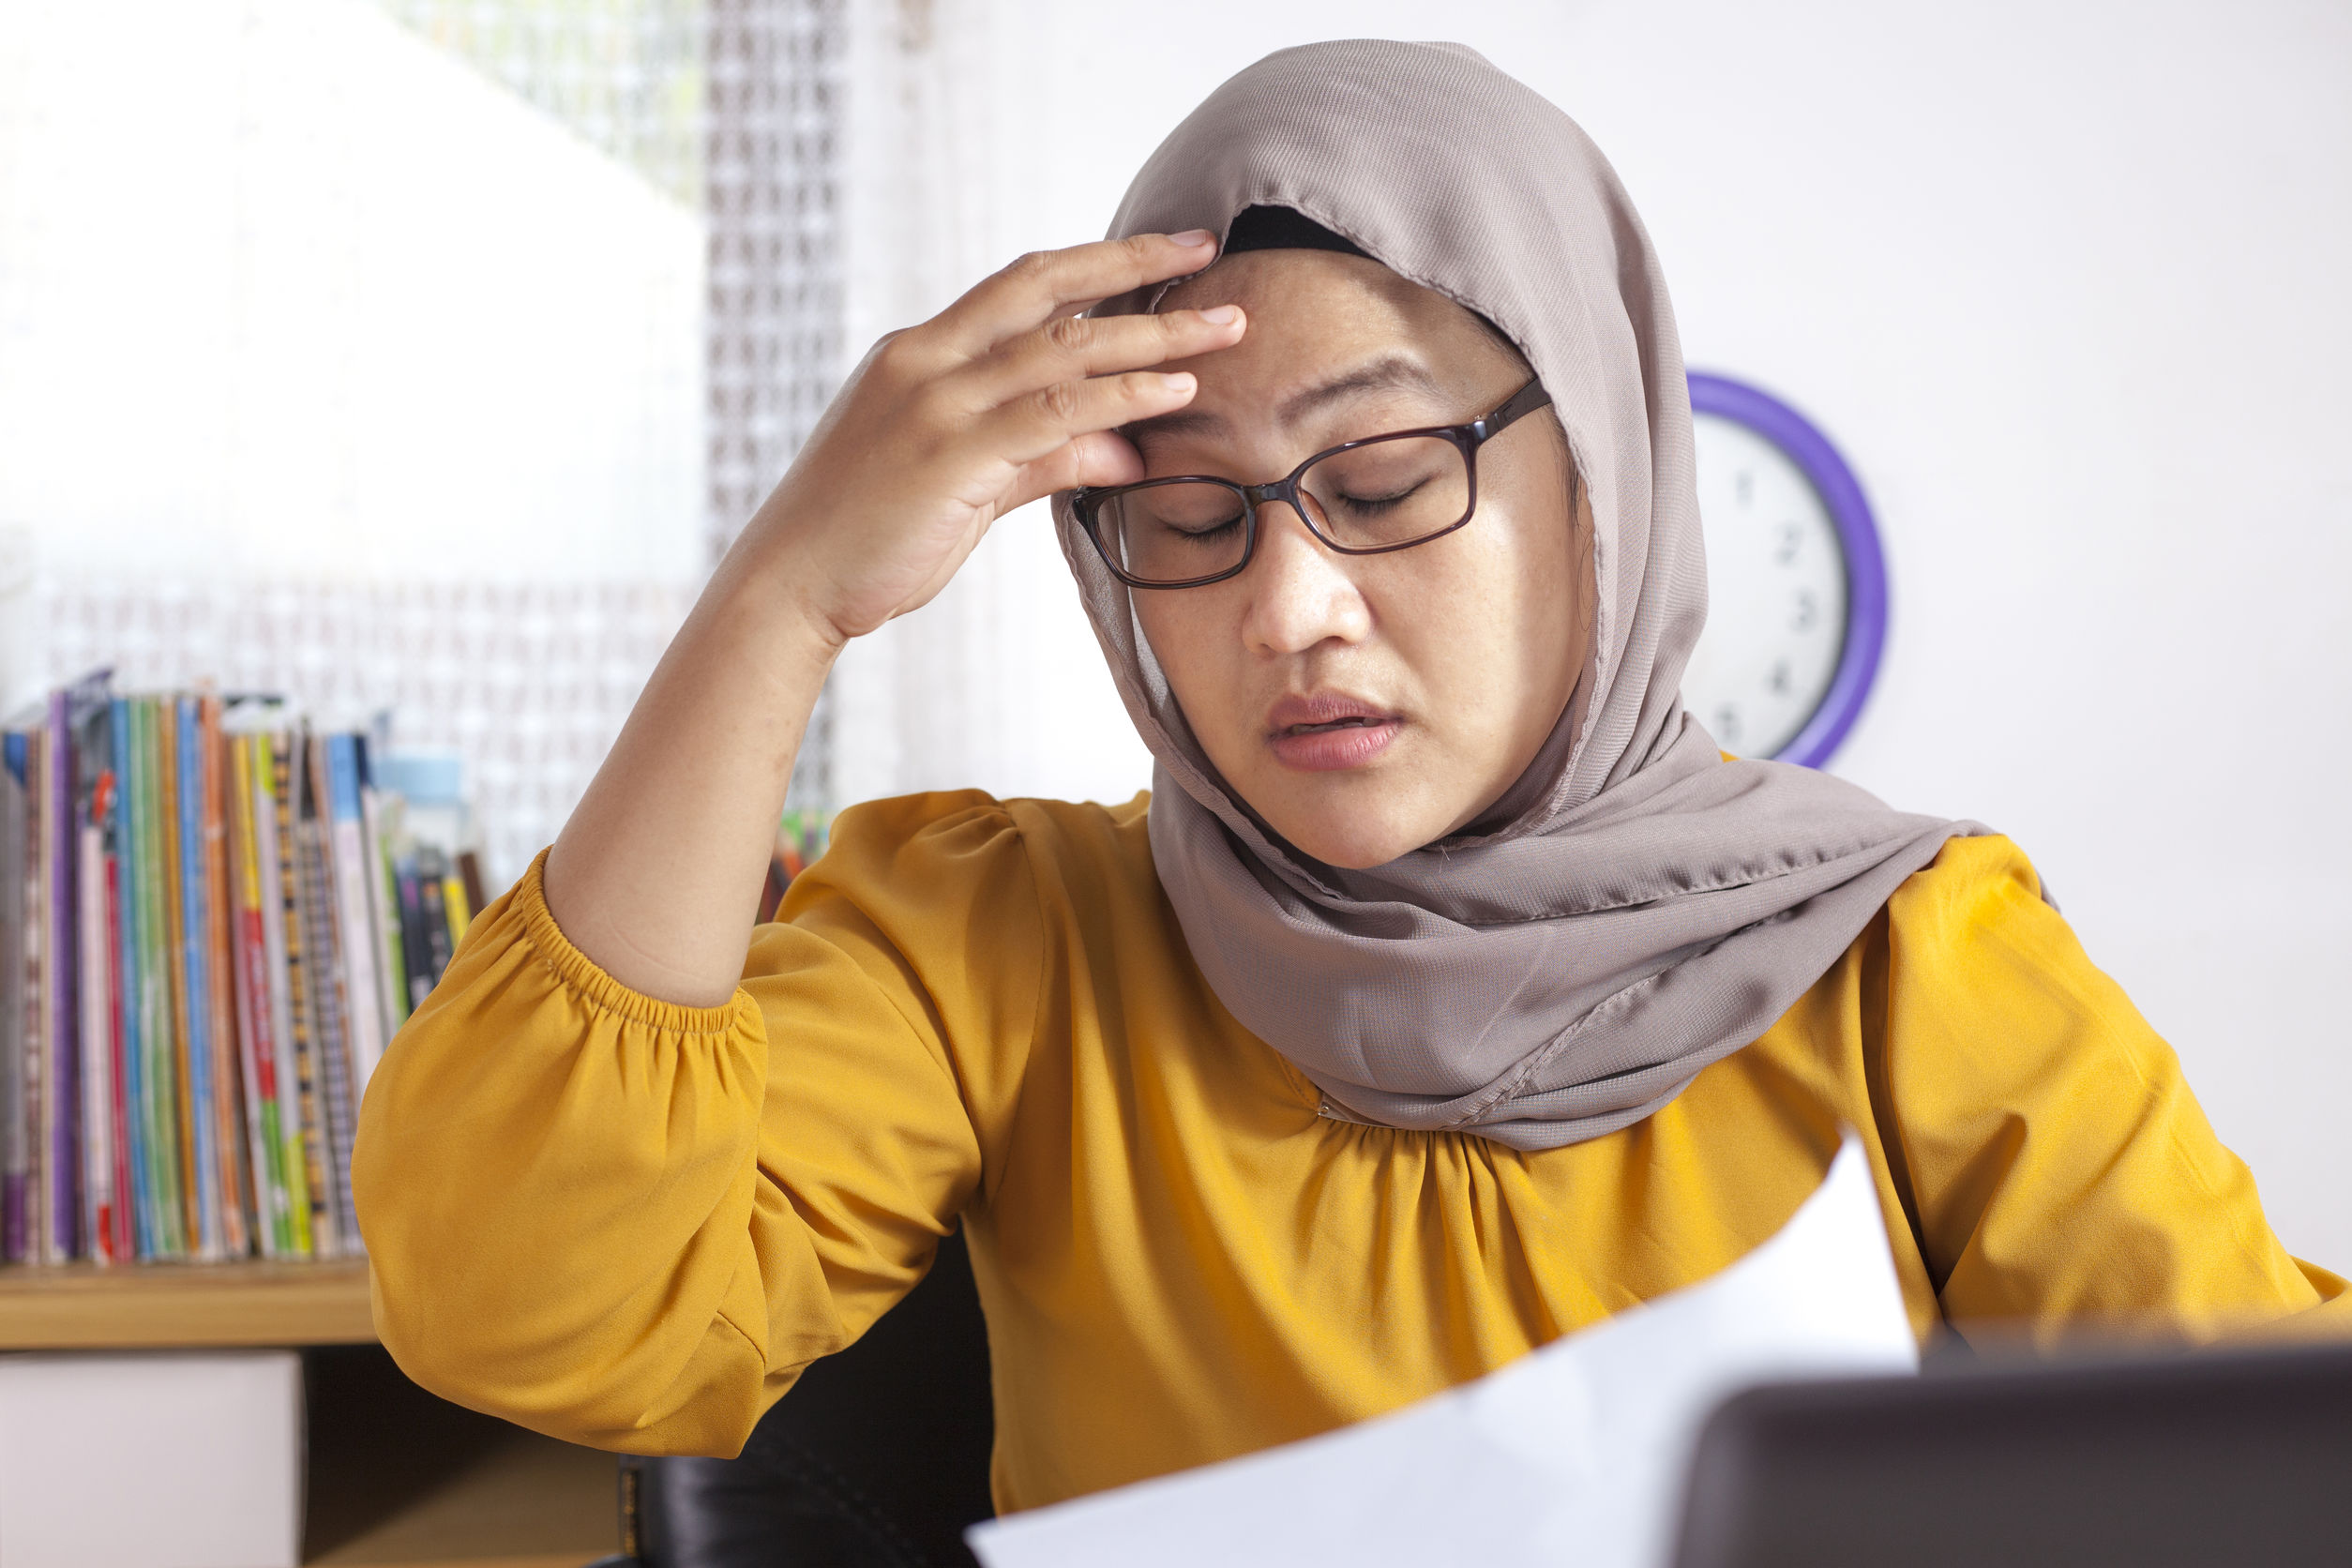 How to homeschool when you're overwhelmed and stress. Don't compare! From our Muslim Homeschool